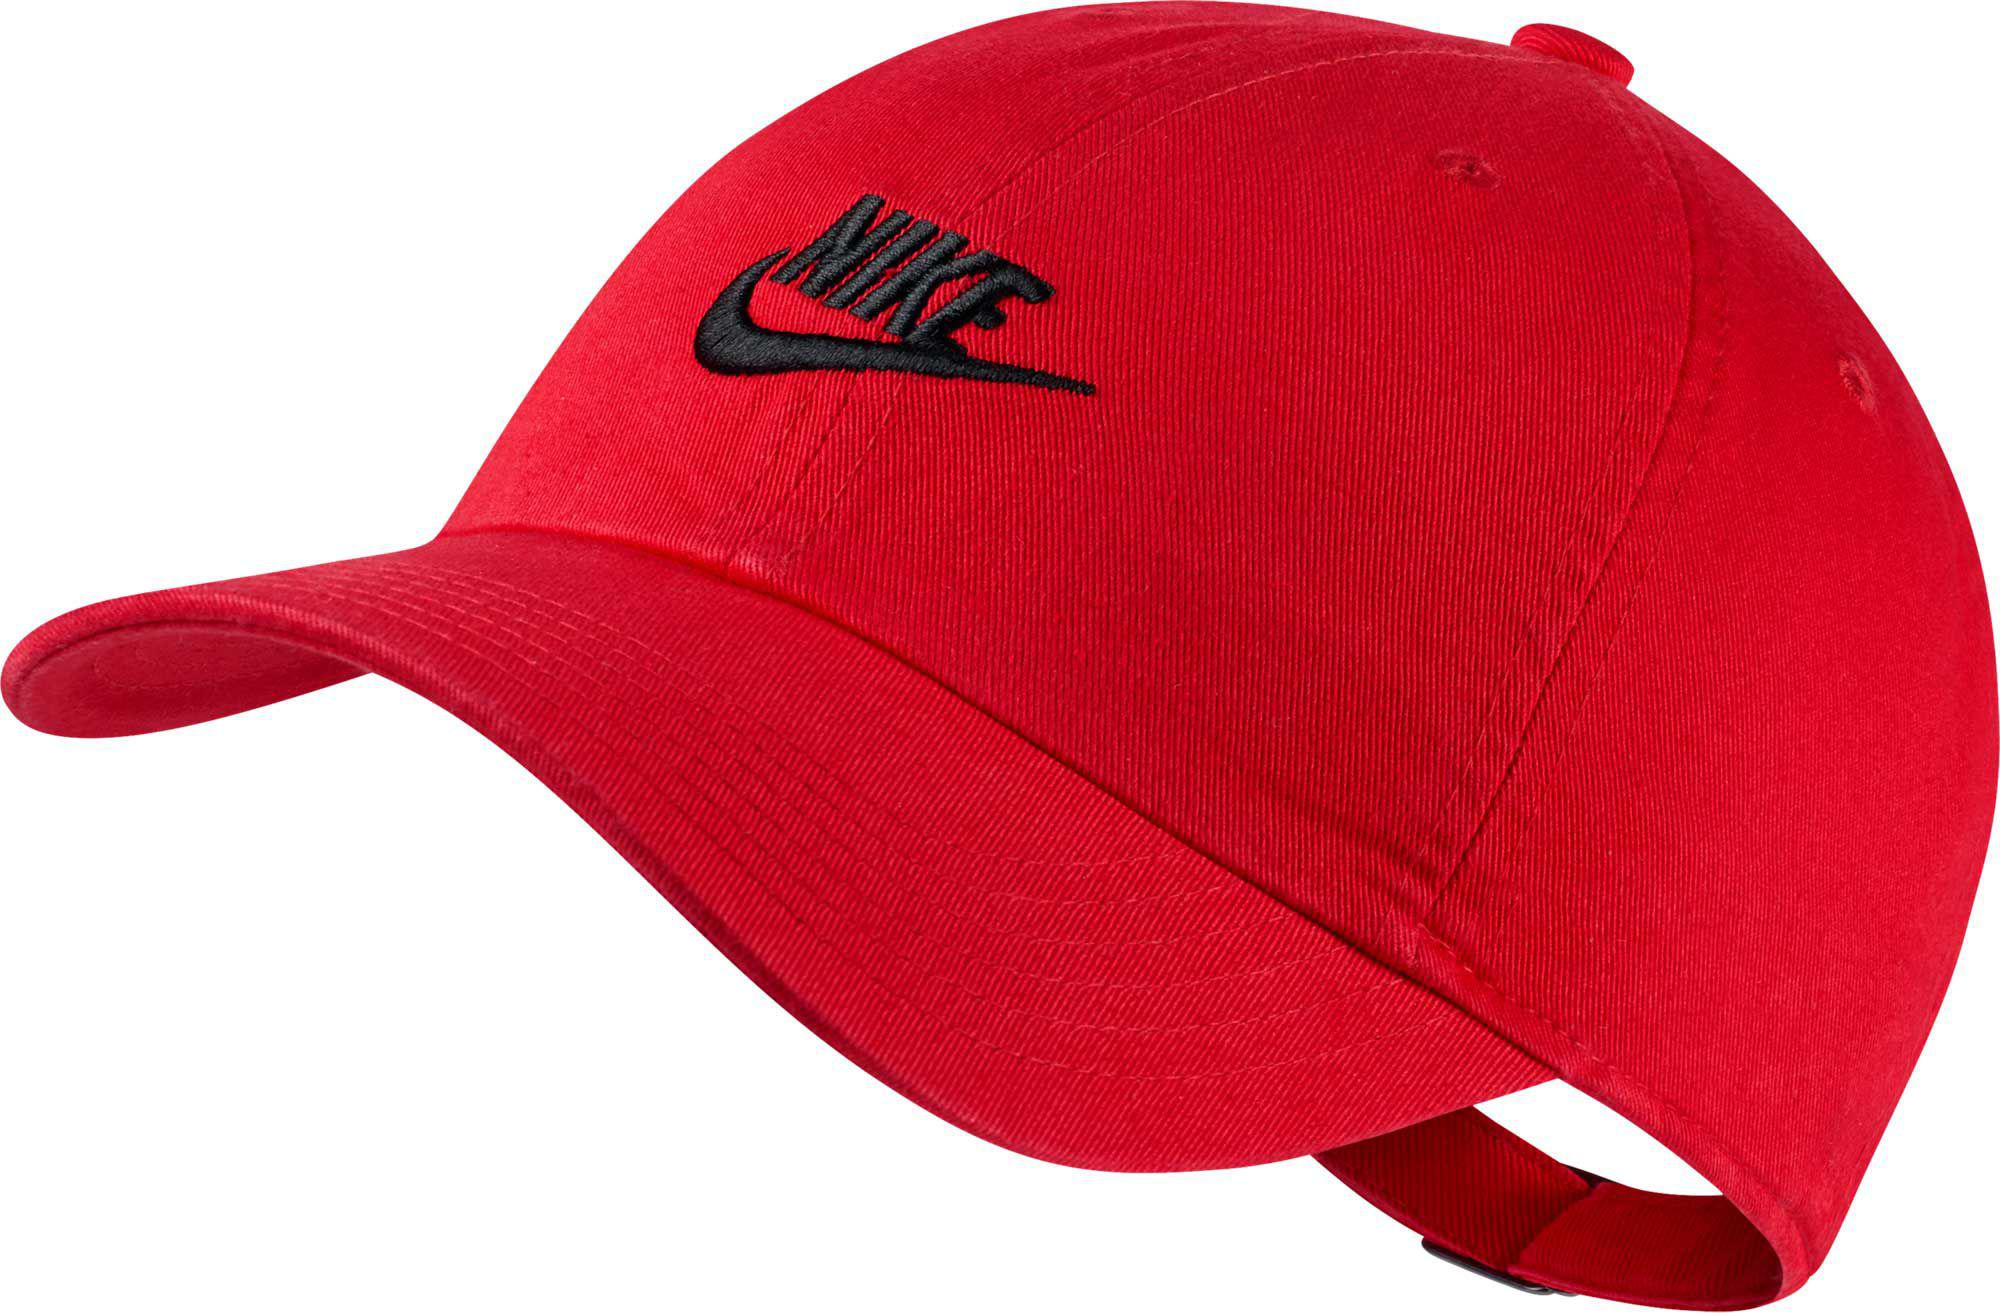 61237d437a6 Nike - Red Oys  Heritage86 Futura Adjustable Hat for Men - Lyst. View  fullscreen